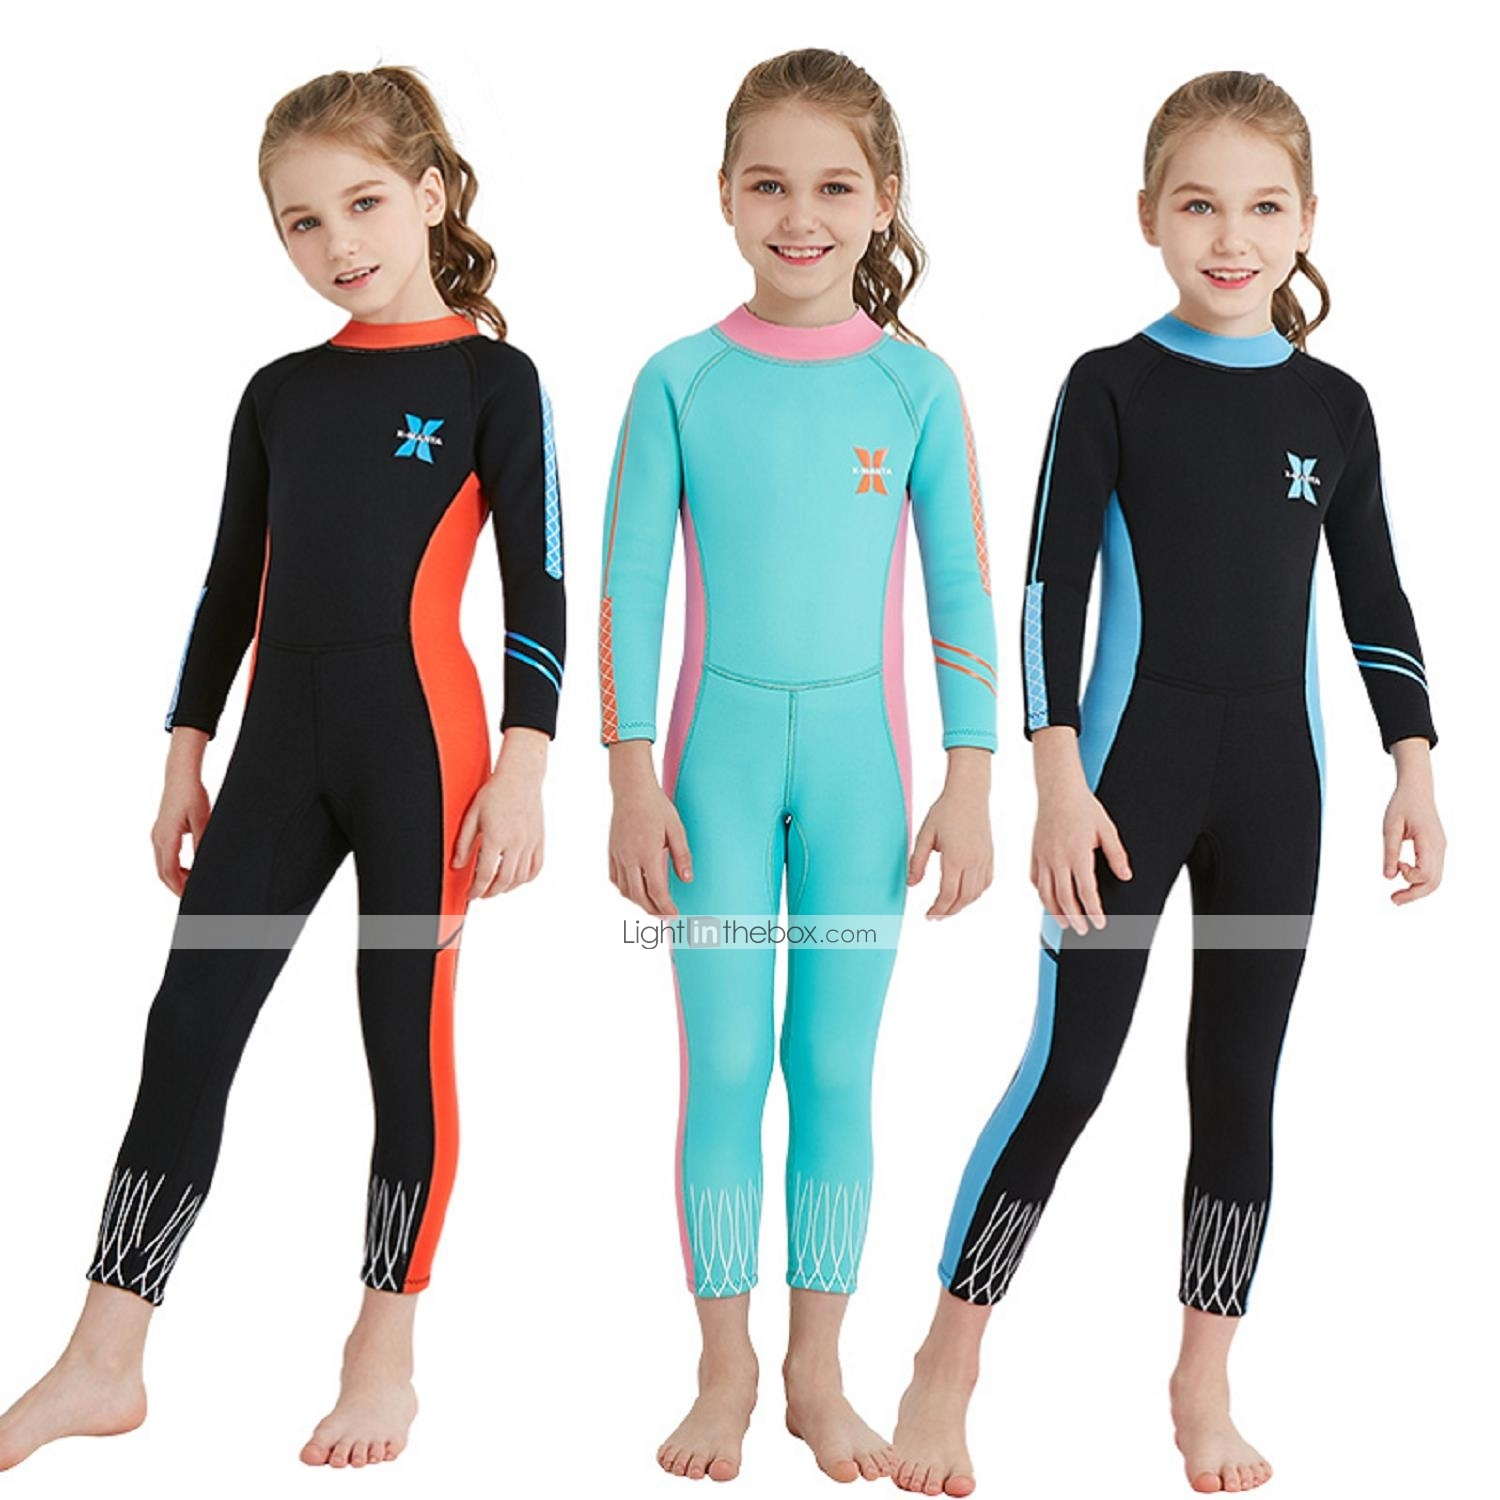 Girls  Full Wetsuit 2.5mm Spandex   SCR Neoprene Diving Suit   Sun ... 2931b0d96